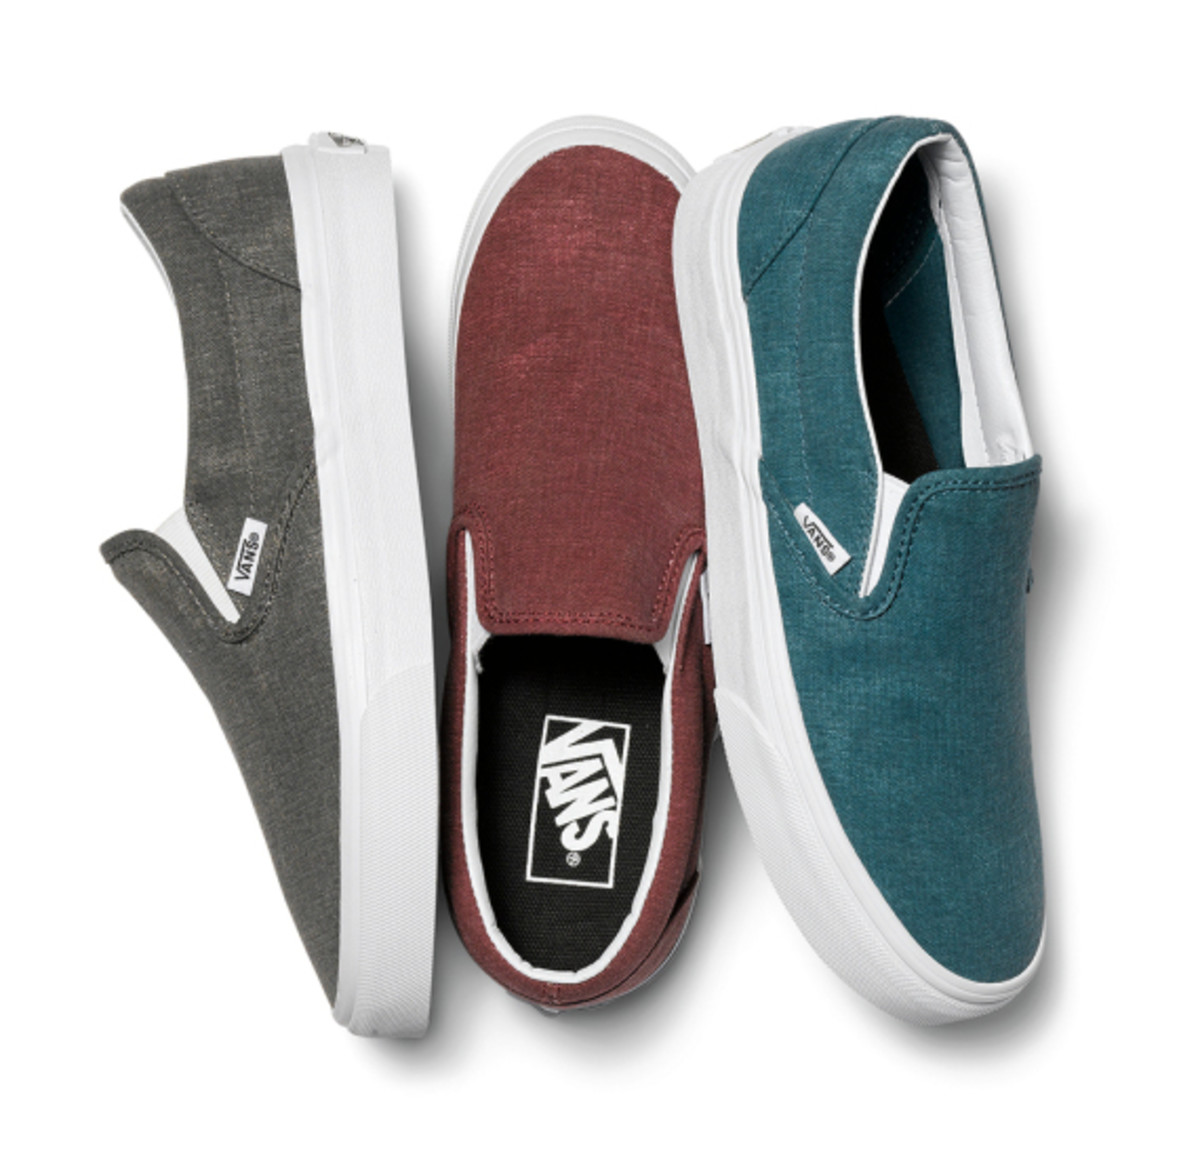 vans-womens-classic-slip-ons-holiday-2014-09